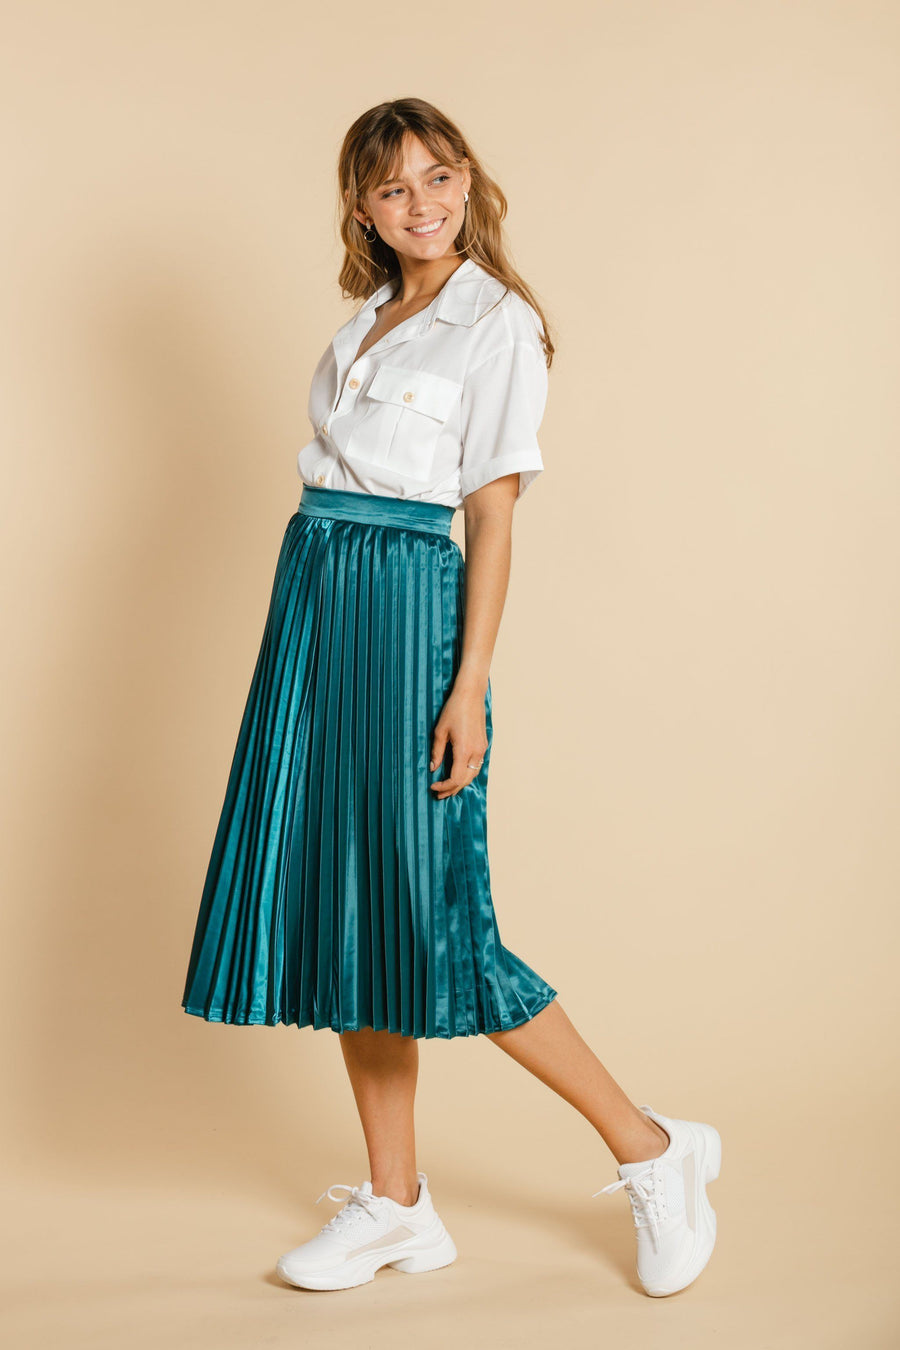 Accordion skirt